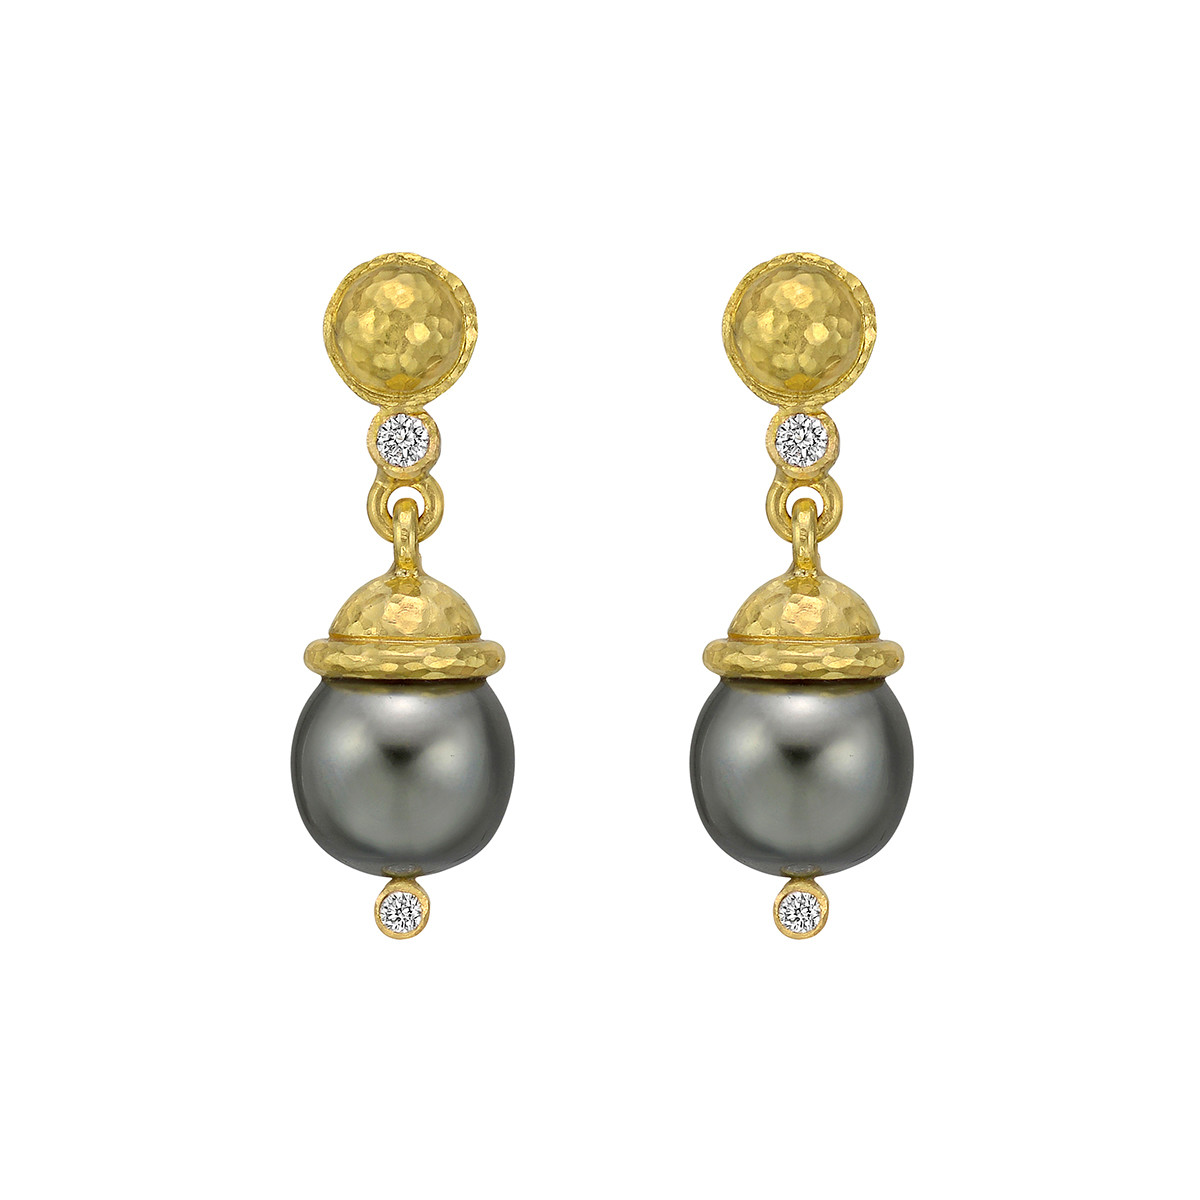 19k Gold, Diamond & Gray Pearl Drop Earrings